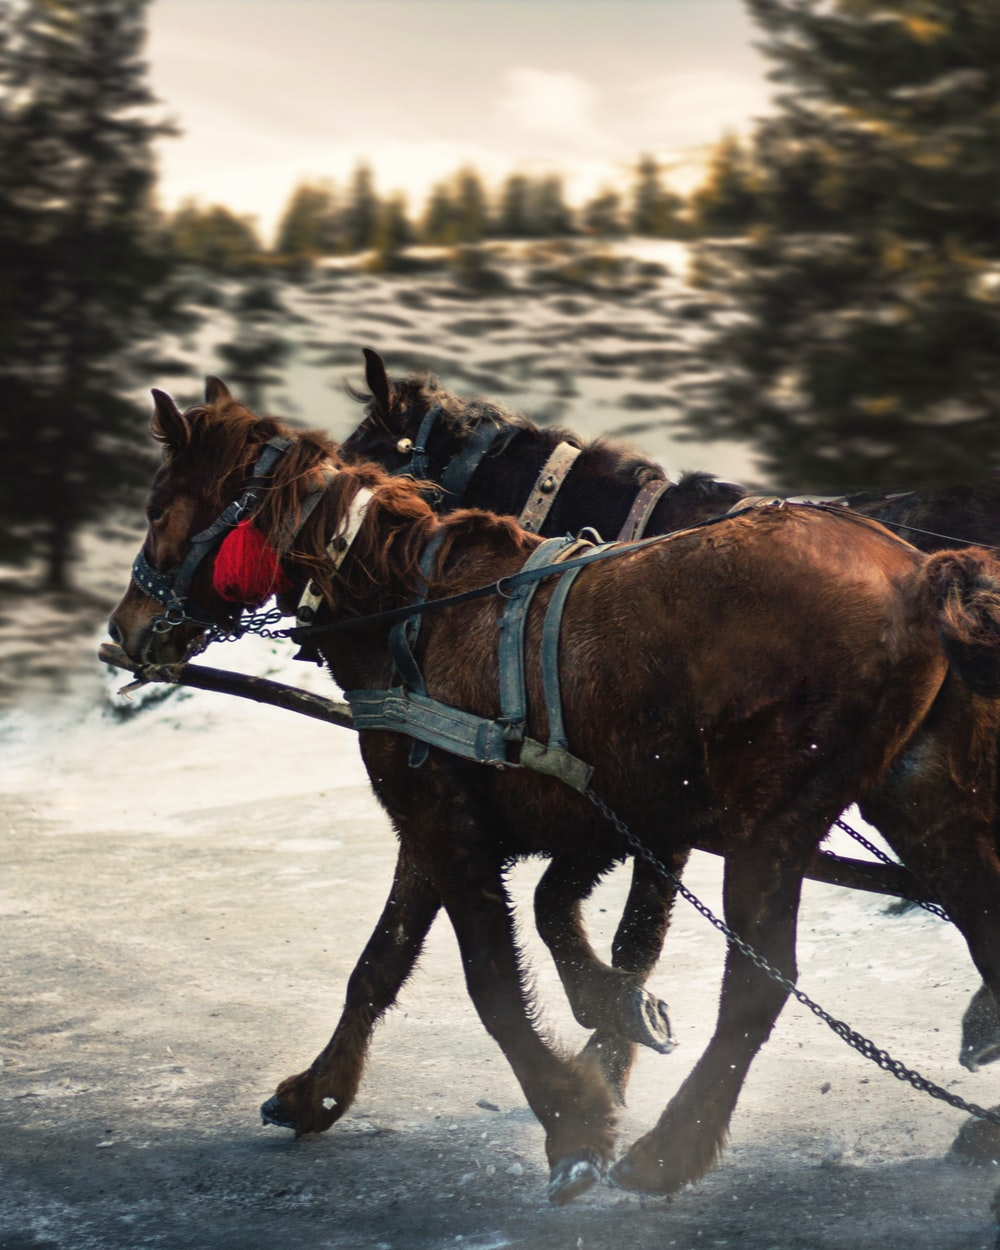 brown horse with black leather saddle on snow covered ground during daytime